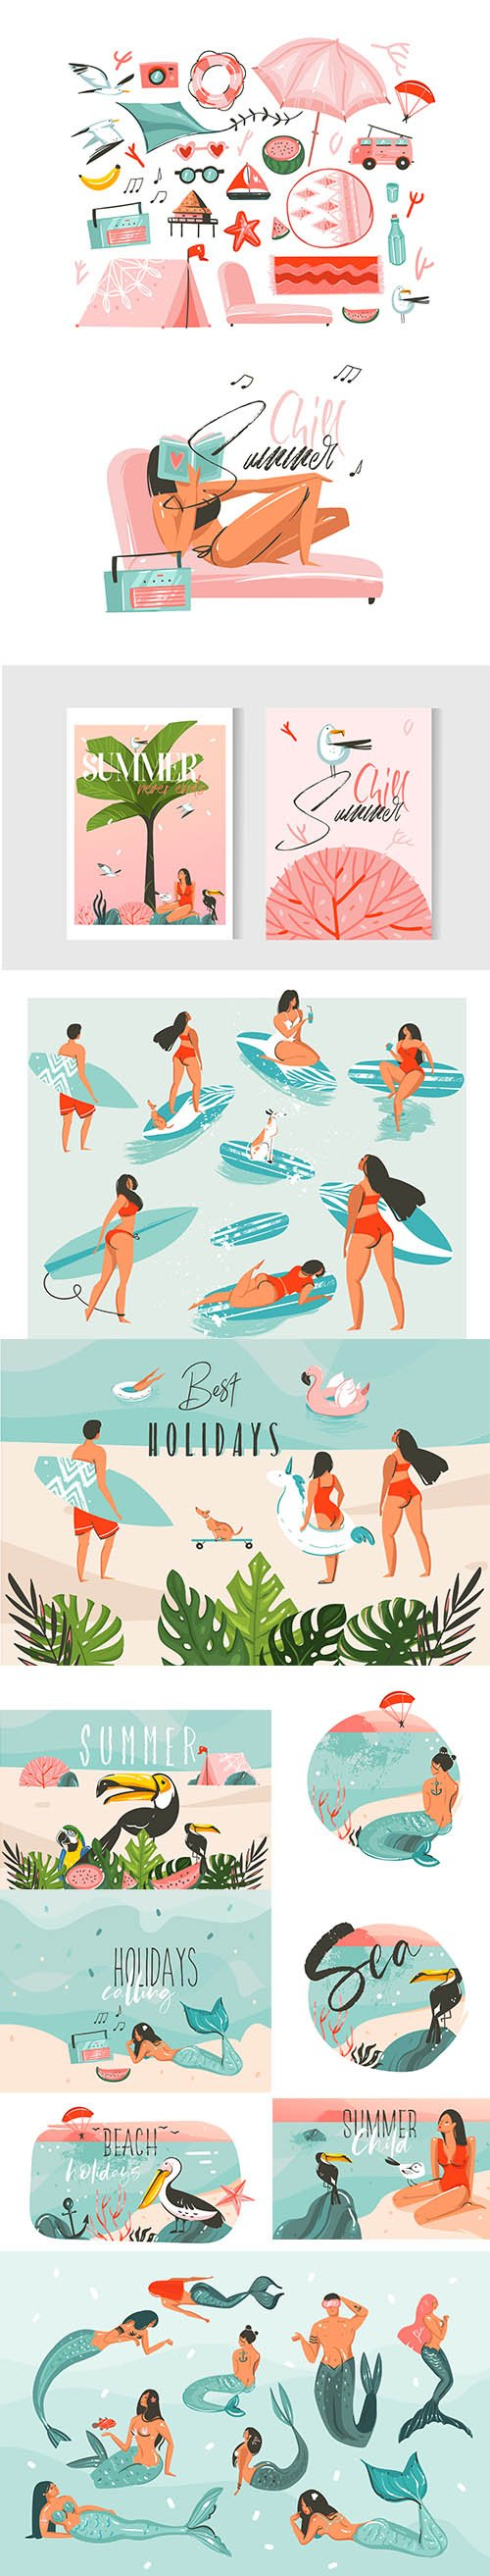 Hand-Drawn Abstract Graphic Cartoon Summer Time Flat Illustrations Collection Set